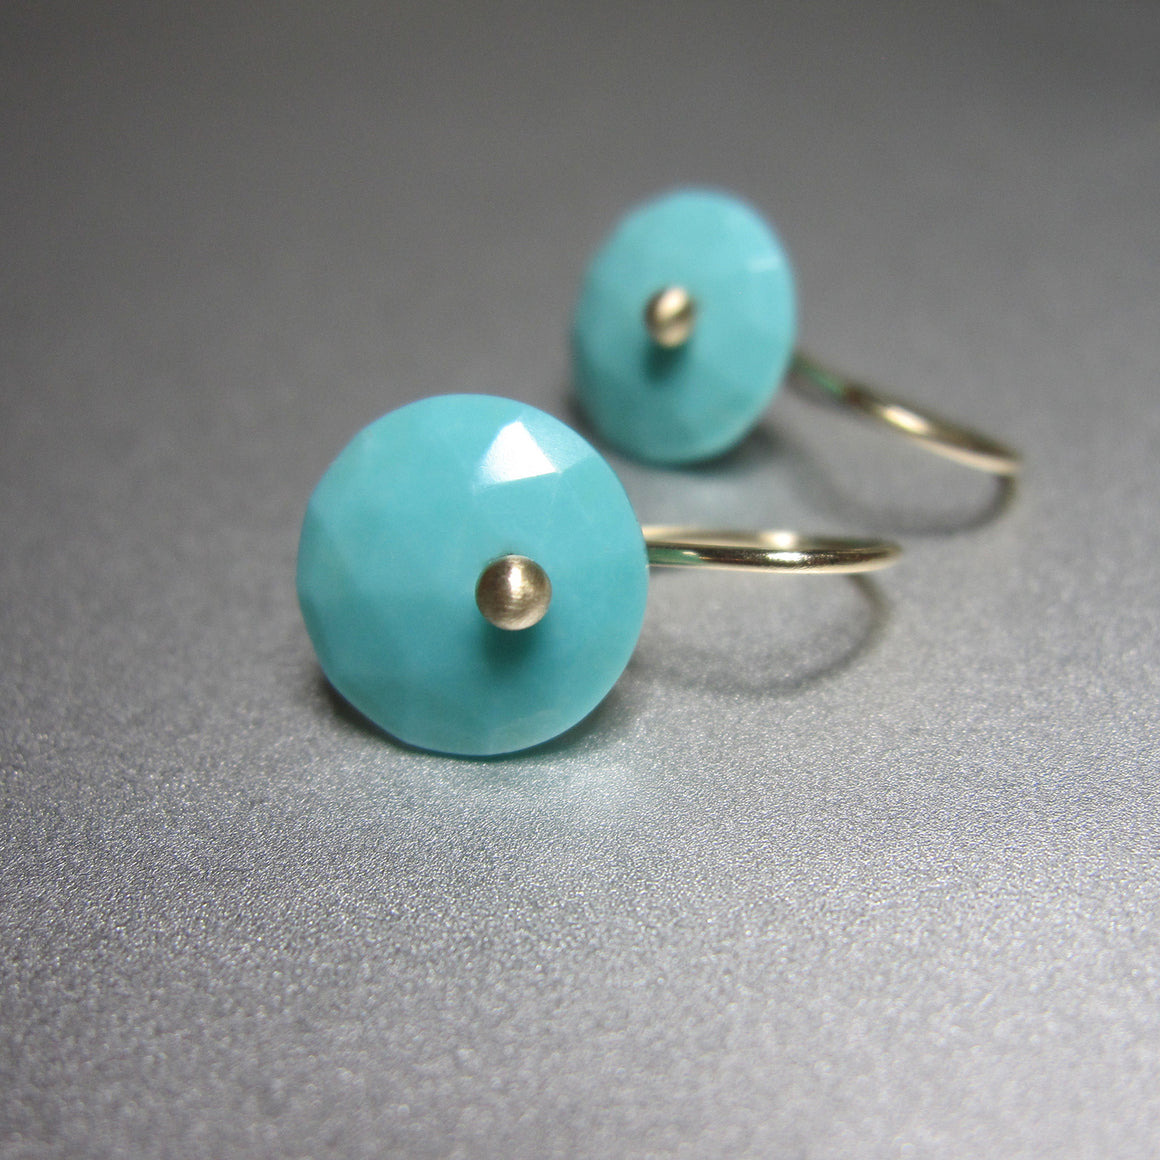 small rose cut turquoise button solid 14k gold earrings